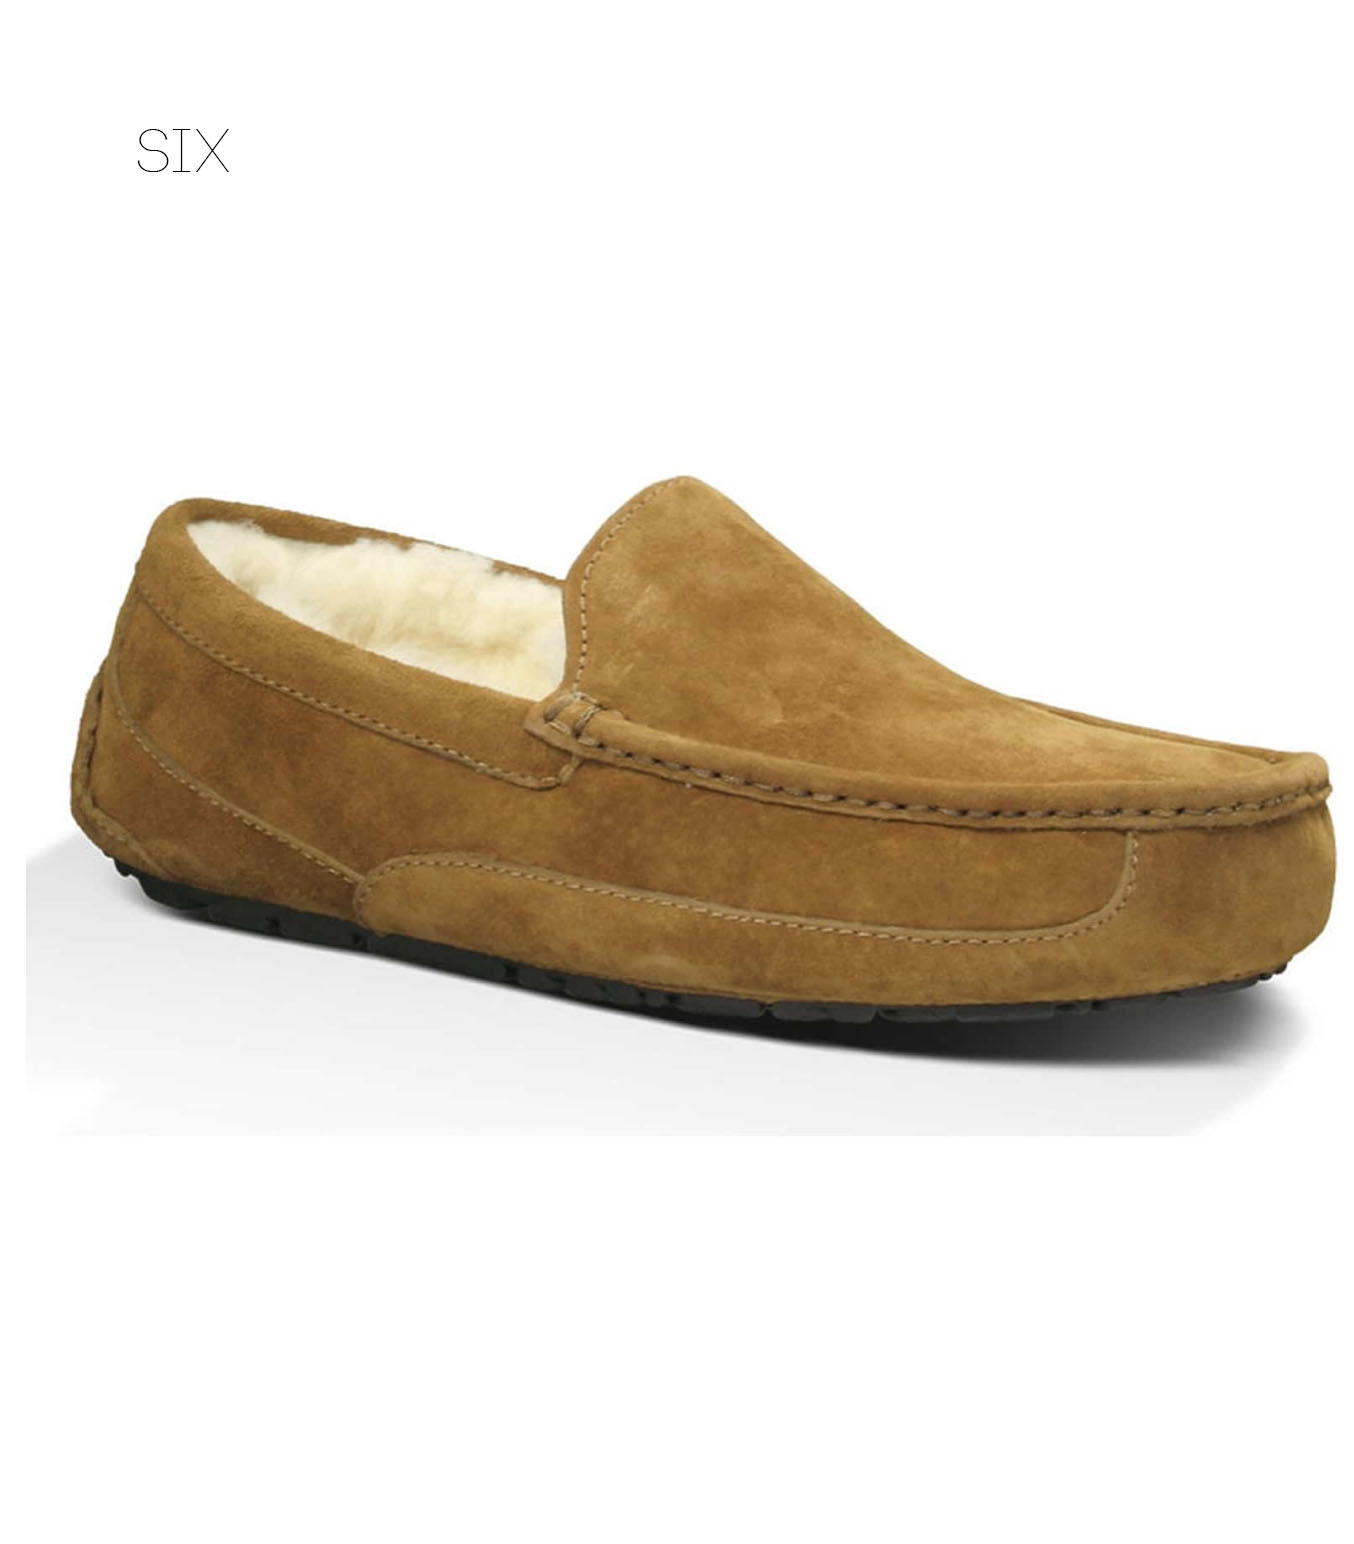 Mens slippers .jpg